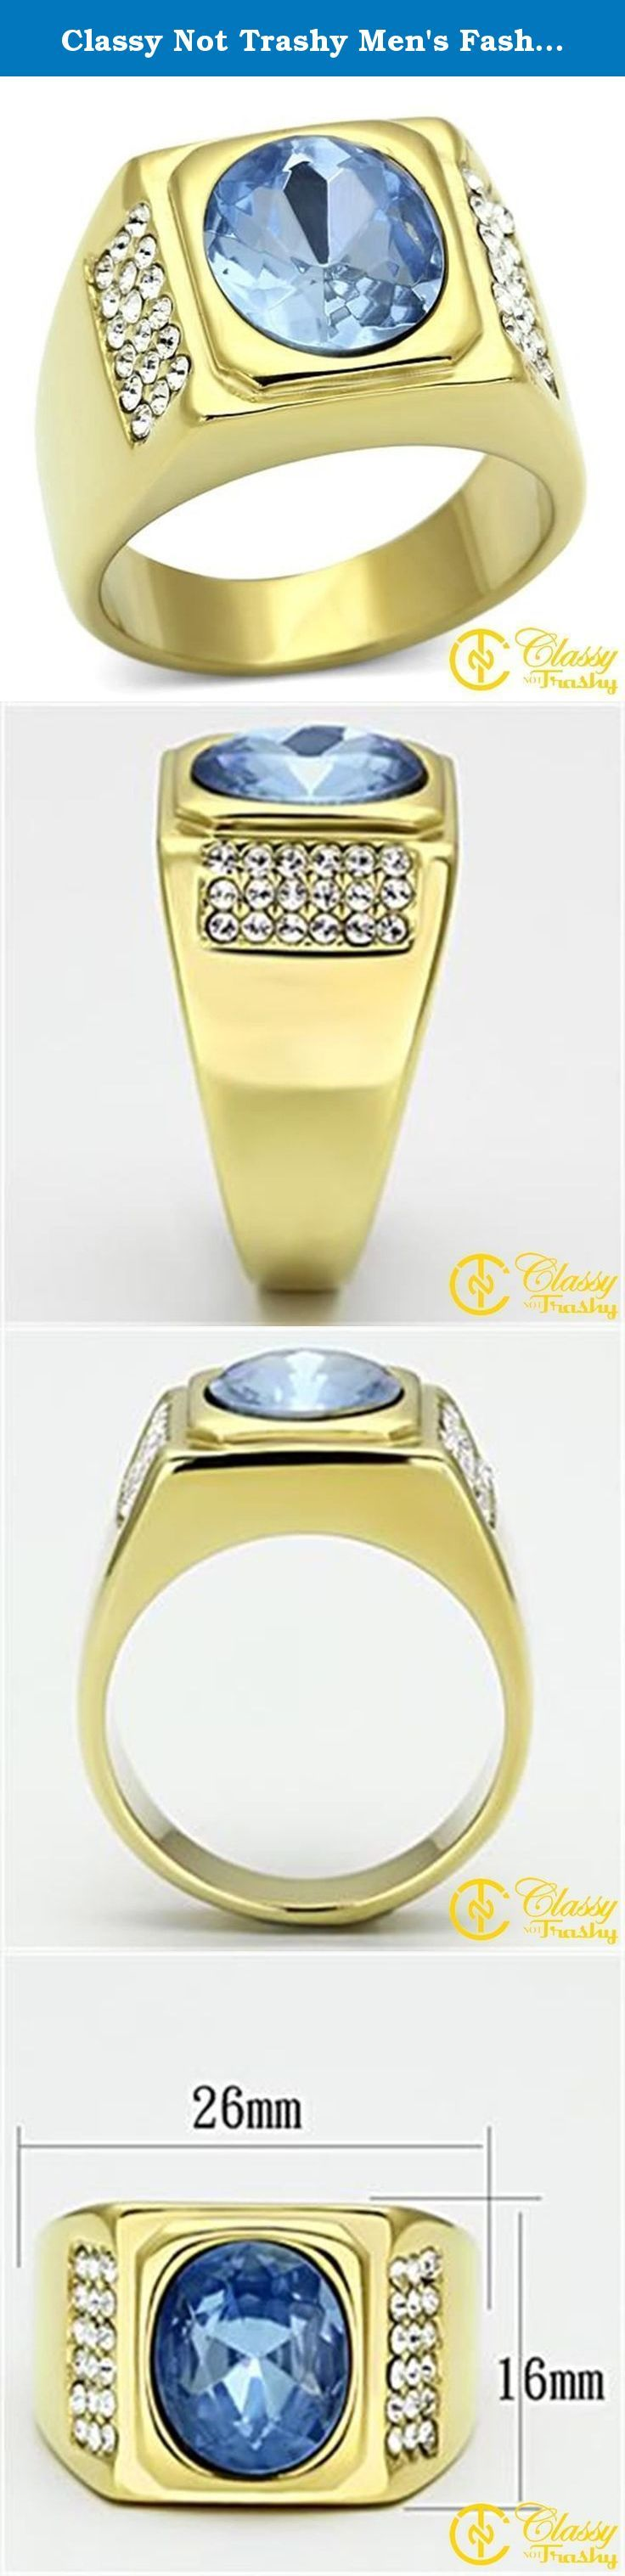 Classy Not Trashy Men's Fashion Jewelry Ring, Premium Grade Stainless Steel Light Blue Synthetic Stone Oval Block Ring Size 13. This gorgeous Classy Not Trashy® Men's Fashion Jewelry Ring, Premium Grade High Quality Stainless Steel Light Blue Synthetic Stone Oval Block Ring Size 13 has the finest details and highest quality you will find anywhere! Our team prides ourselves on finding the best prices without reducing quality, and in this Men's Ring Collection, we have definitely done just...